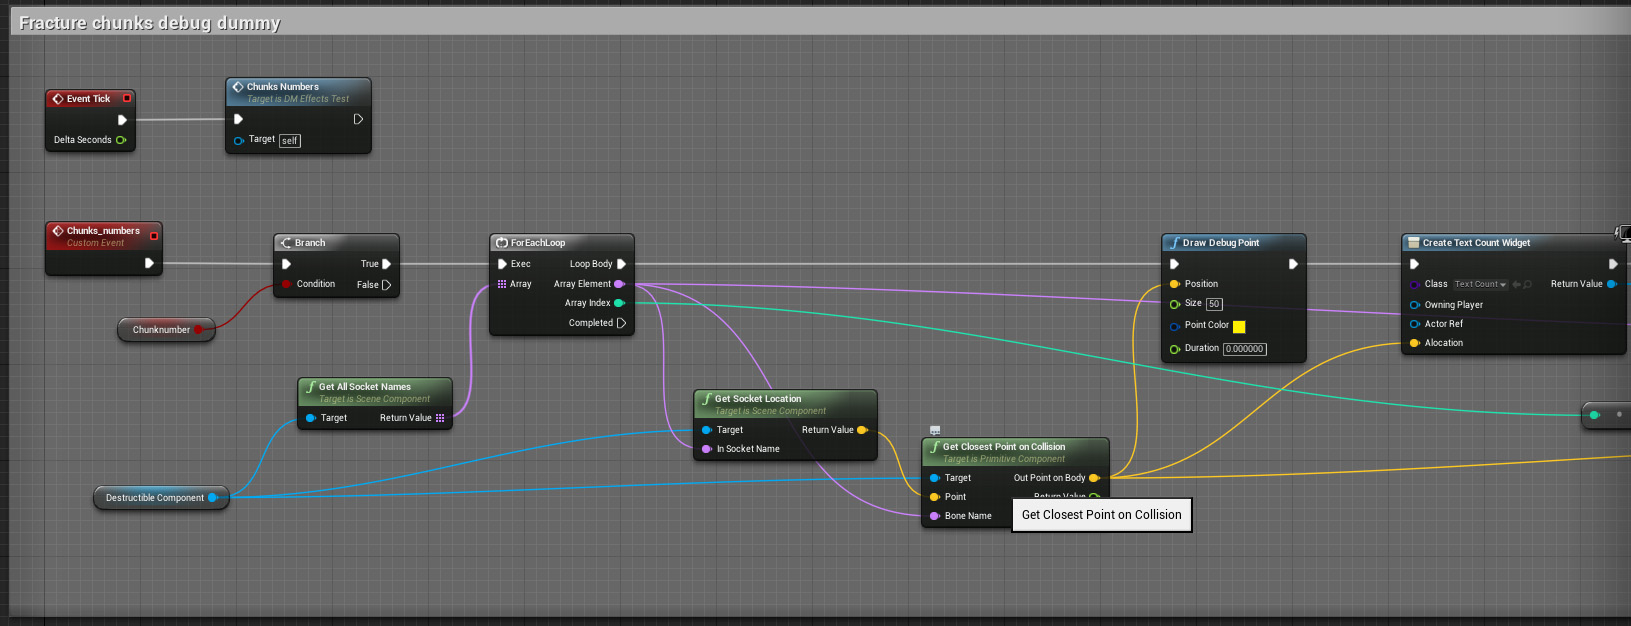 How to attach effects to Fracture chunks (UE4) - Real Time VFX